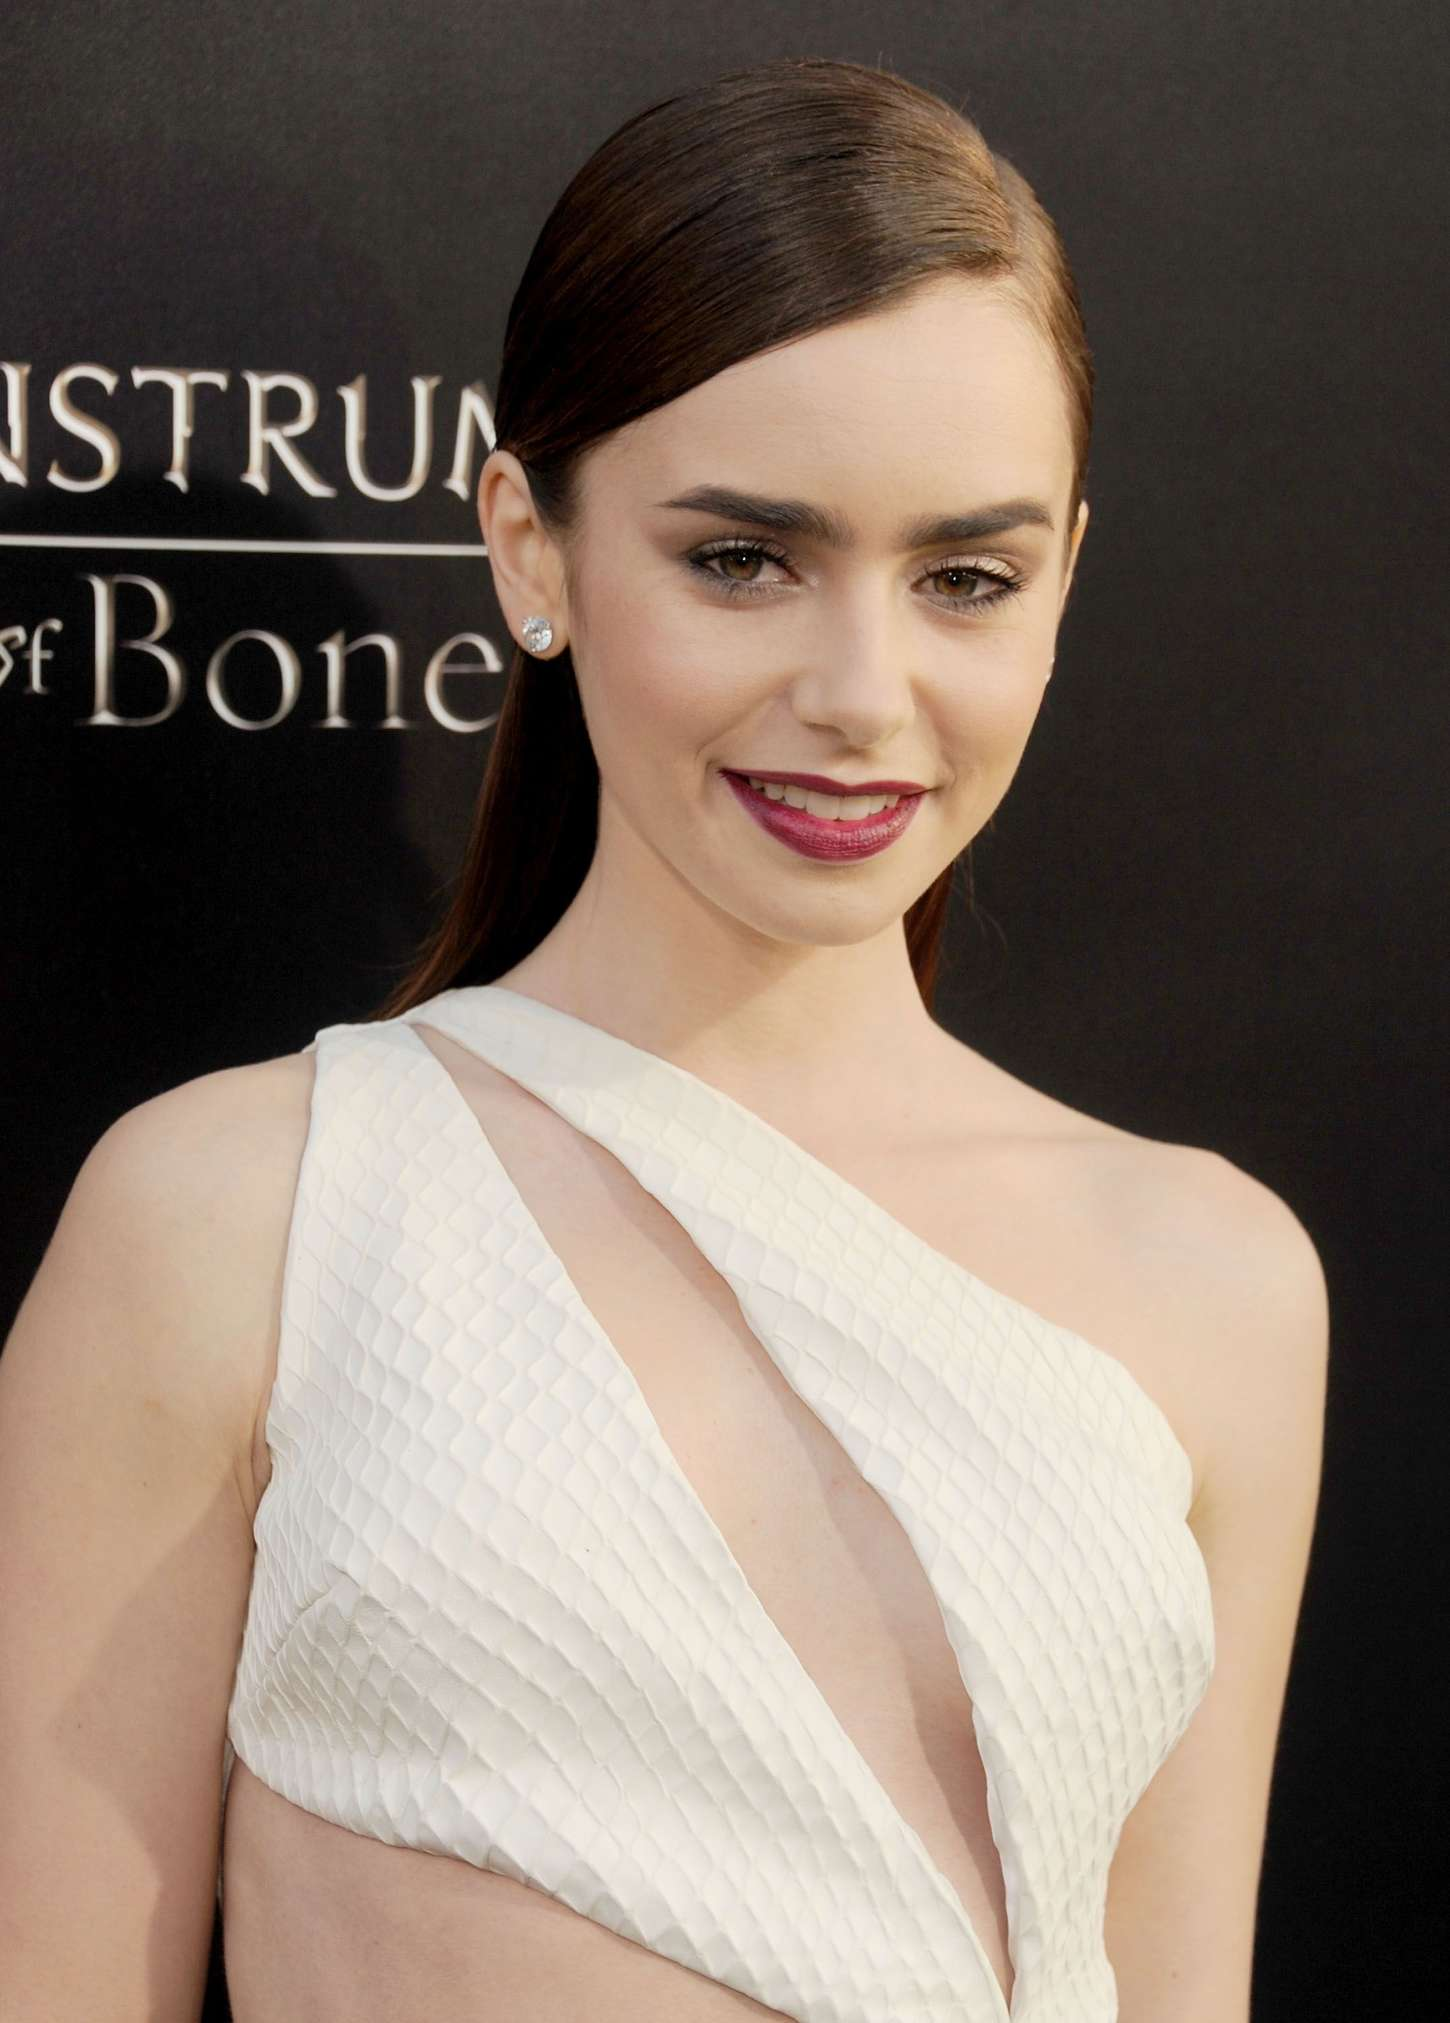 Lily Collins - The Mortal Instruments City Of Bones ...